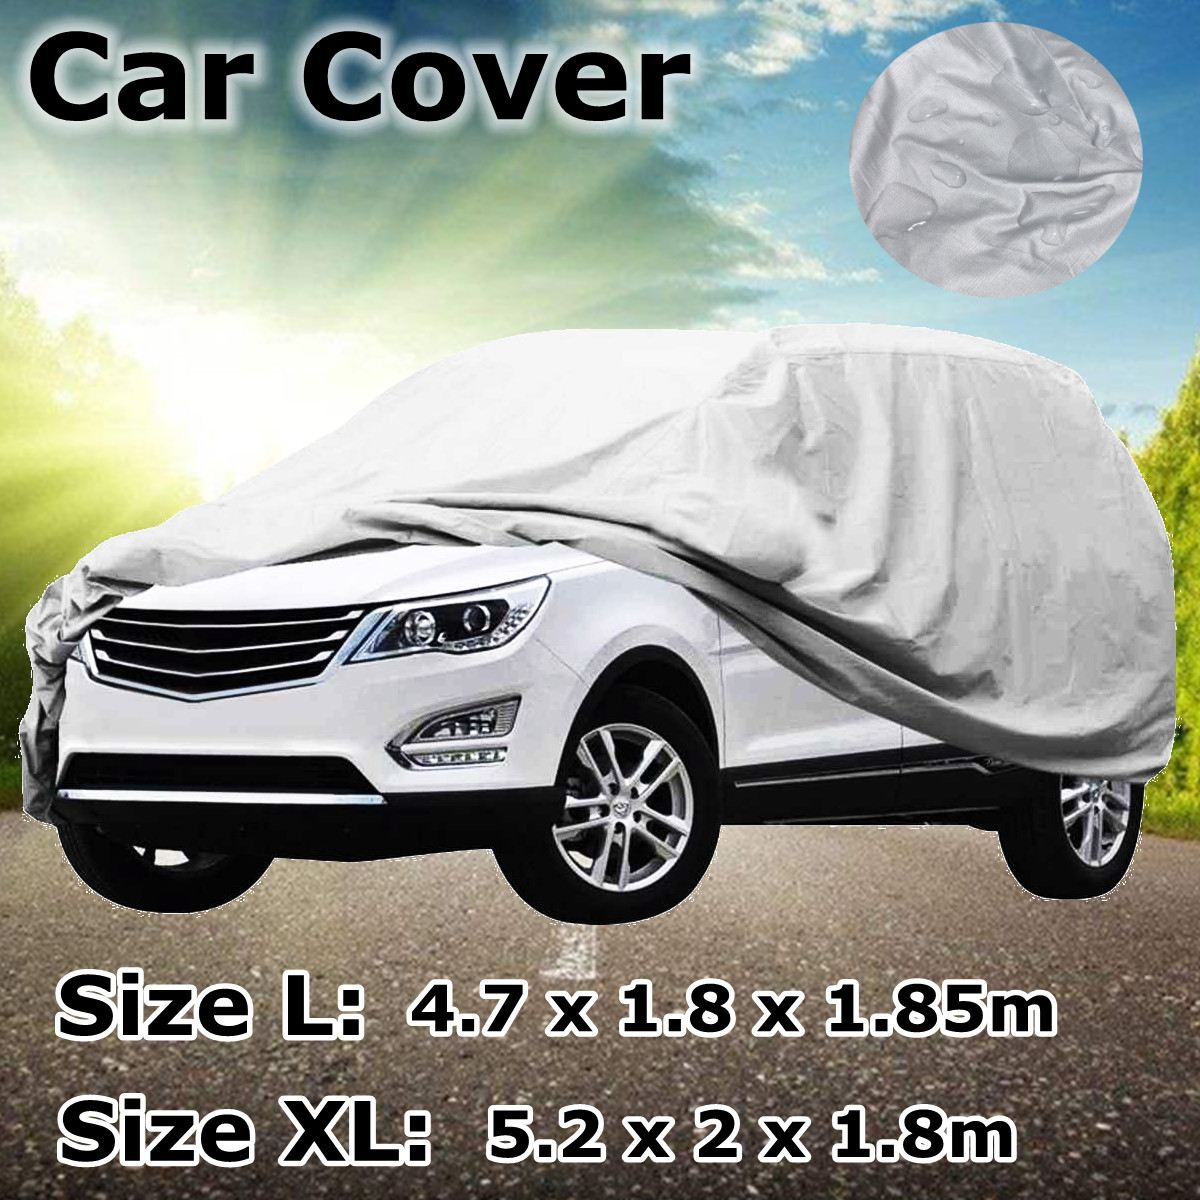 Car-Cover Protection SUV Snow Waterproof Outdoor L/xl-Size Sun-Rain-Resistant Ice